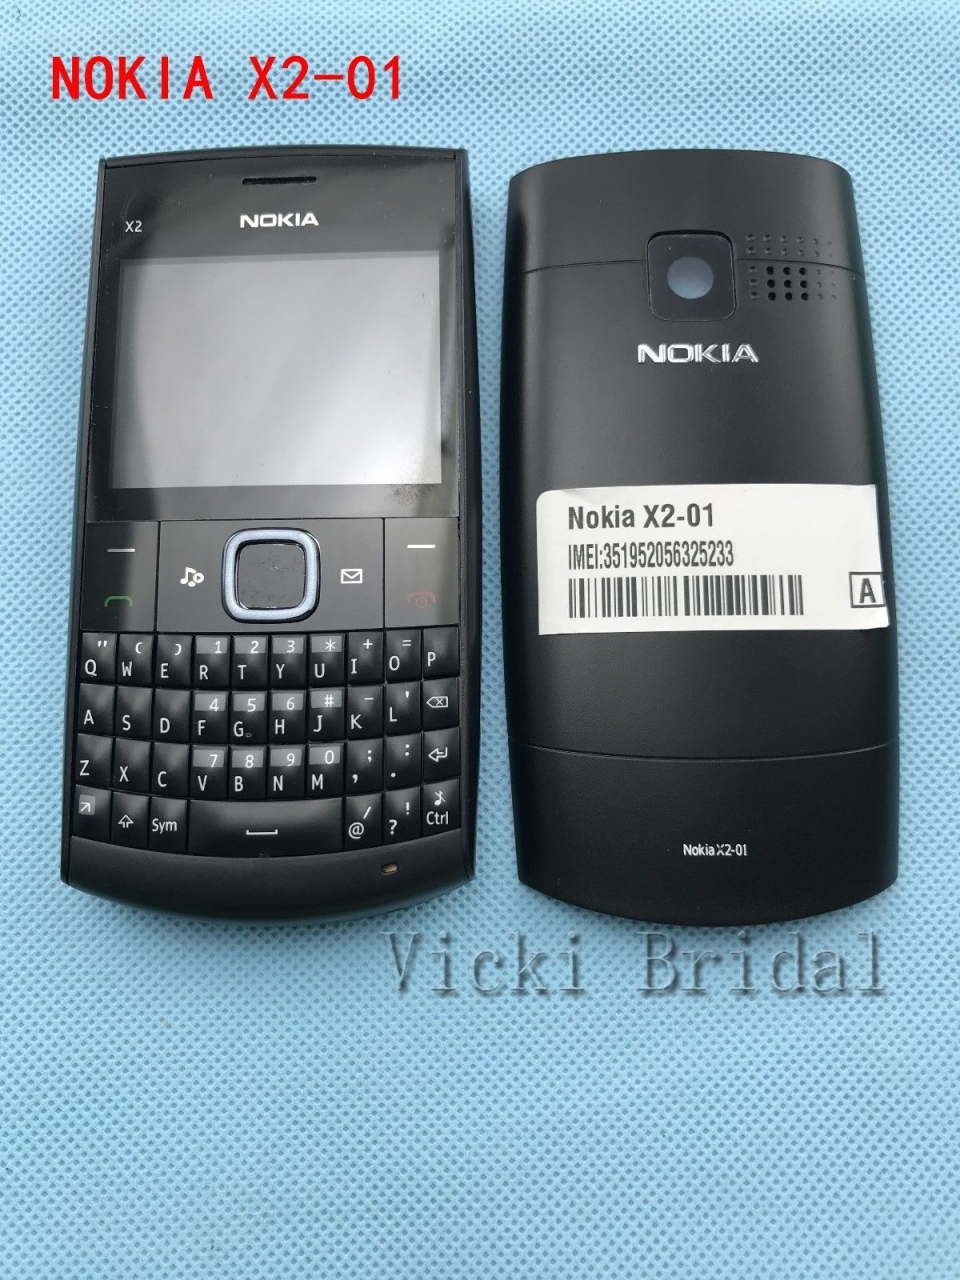 Refurbished phone Nokia X2-01 Symbian OS Computer Keyboard Mobile Phone Fashion Cell Phones blue 4